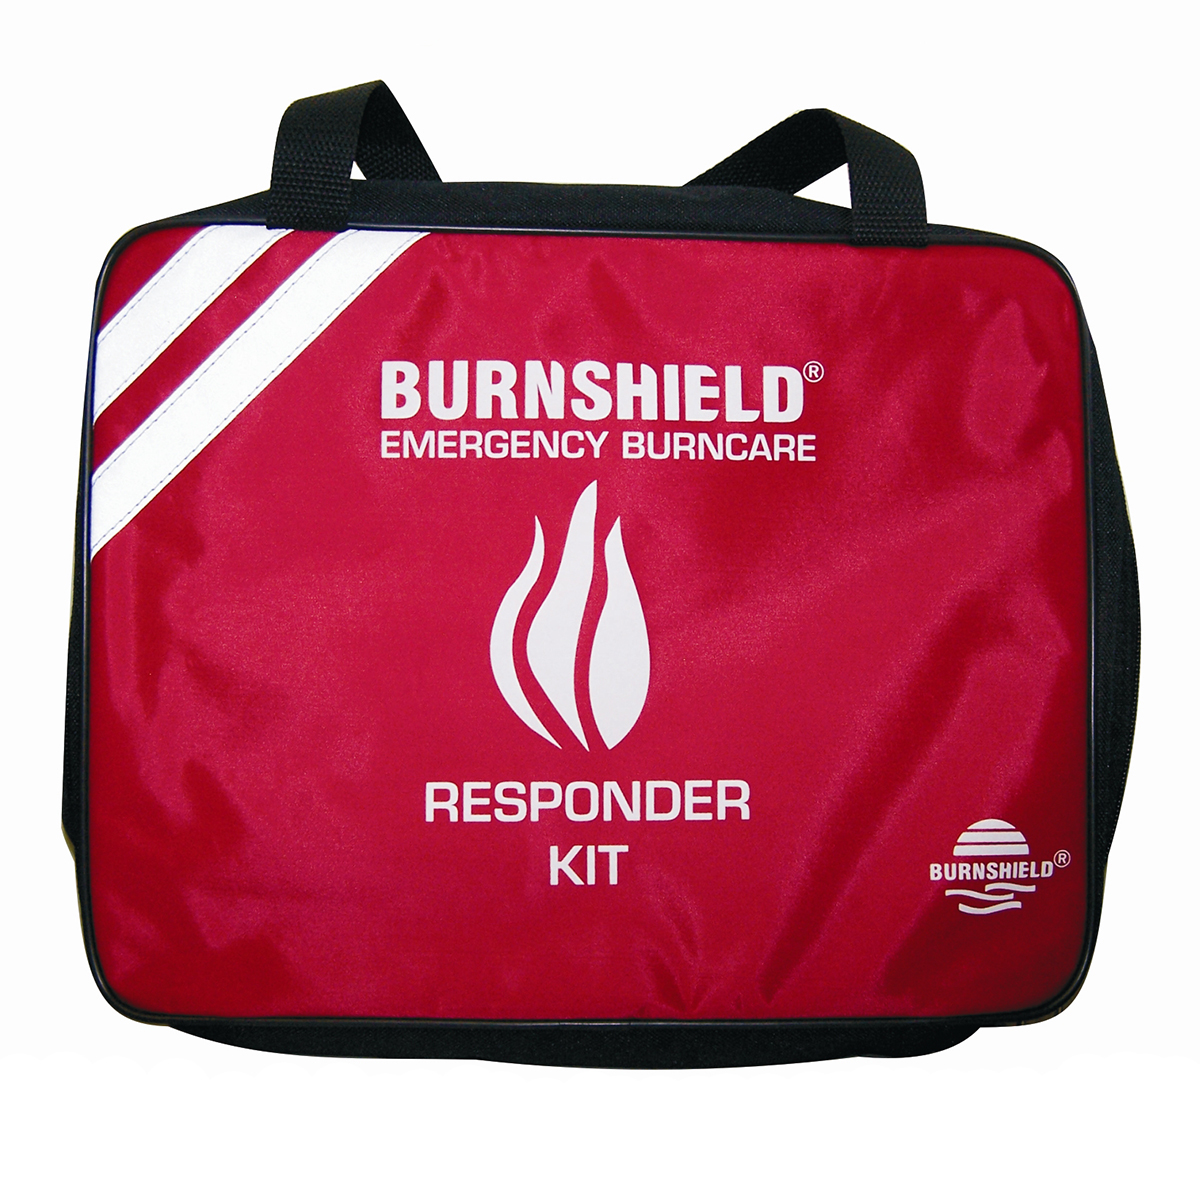 Burnshield® Professional Emergency Responder Trauma Burns Kit Bag